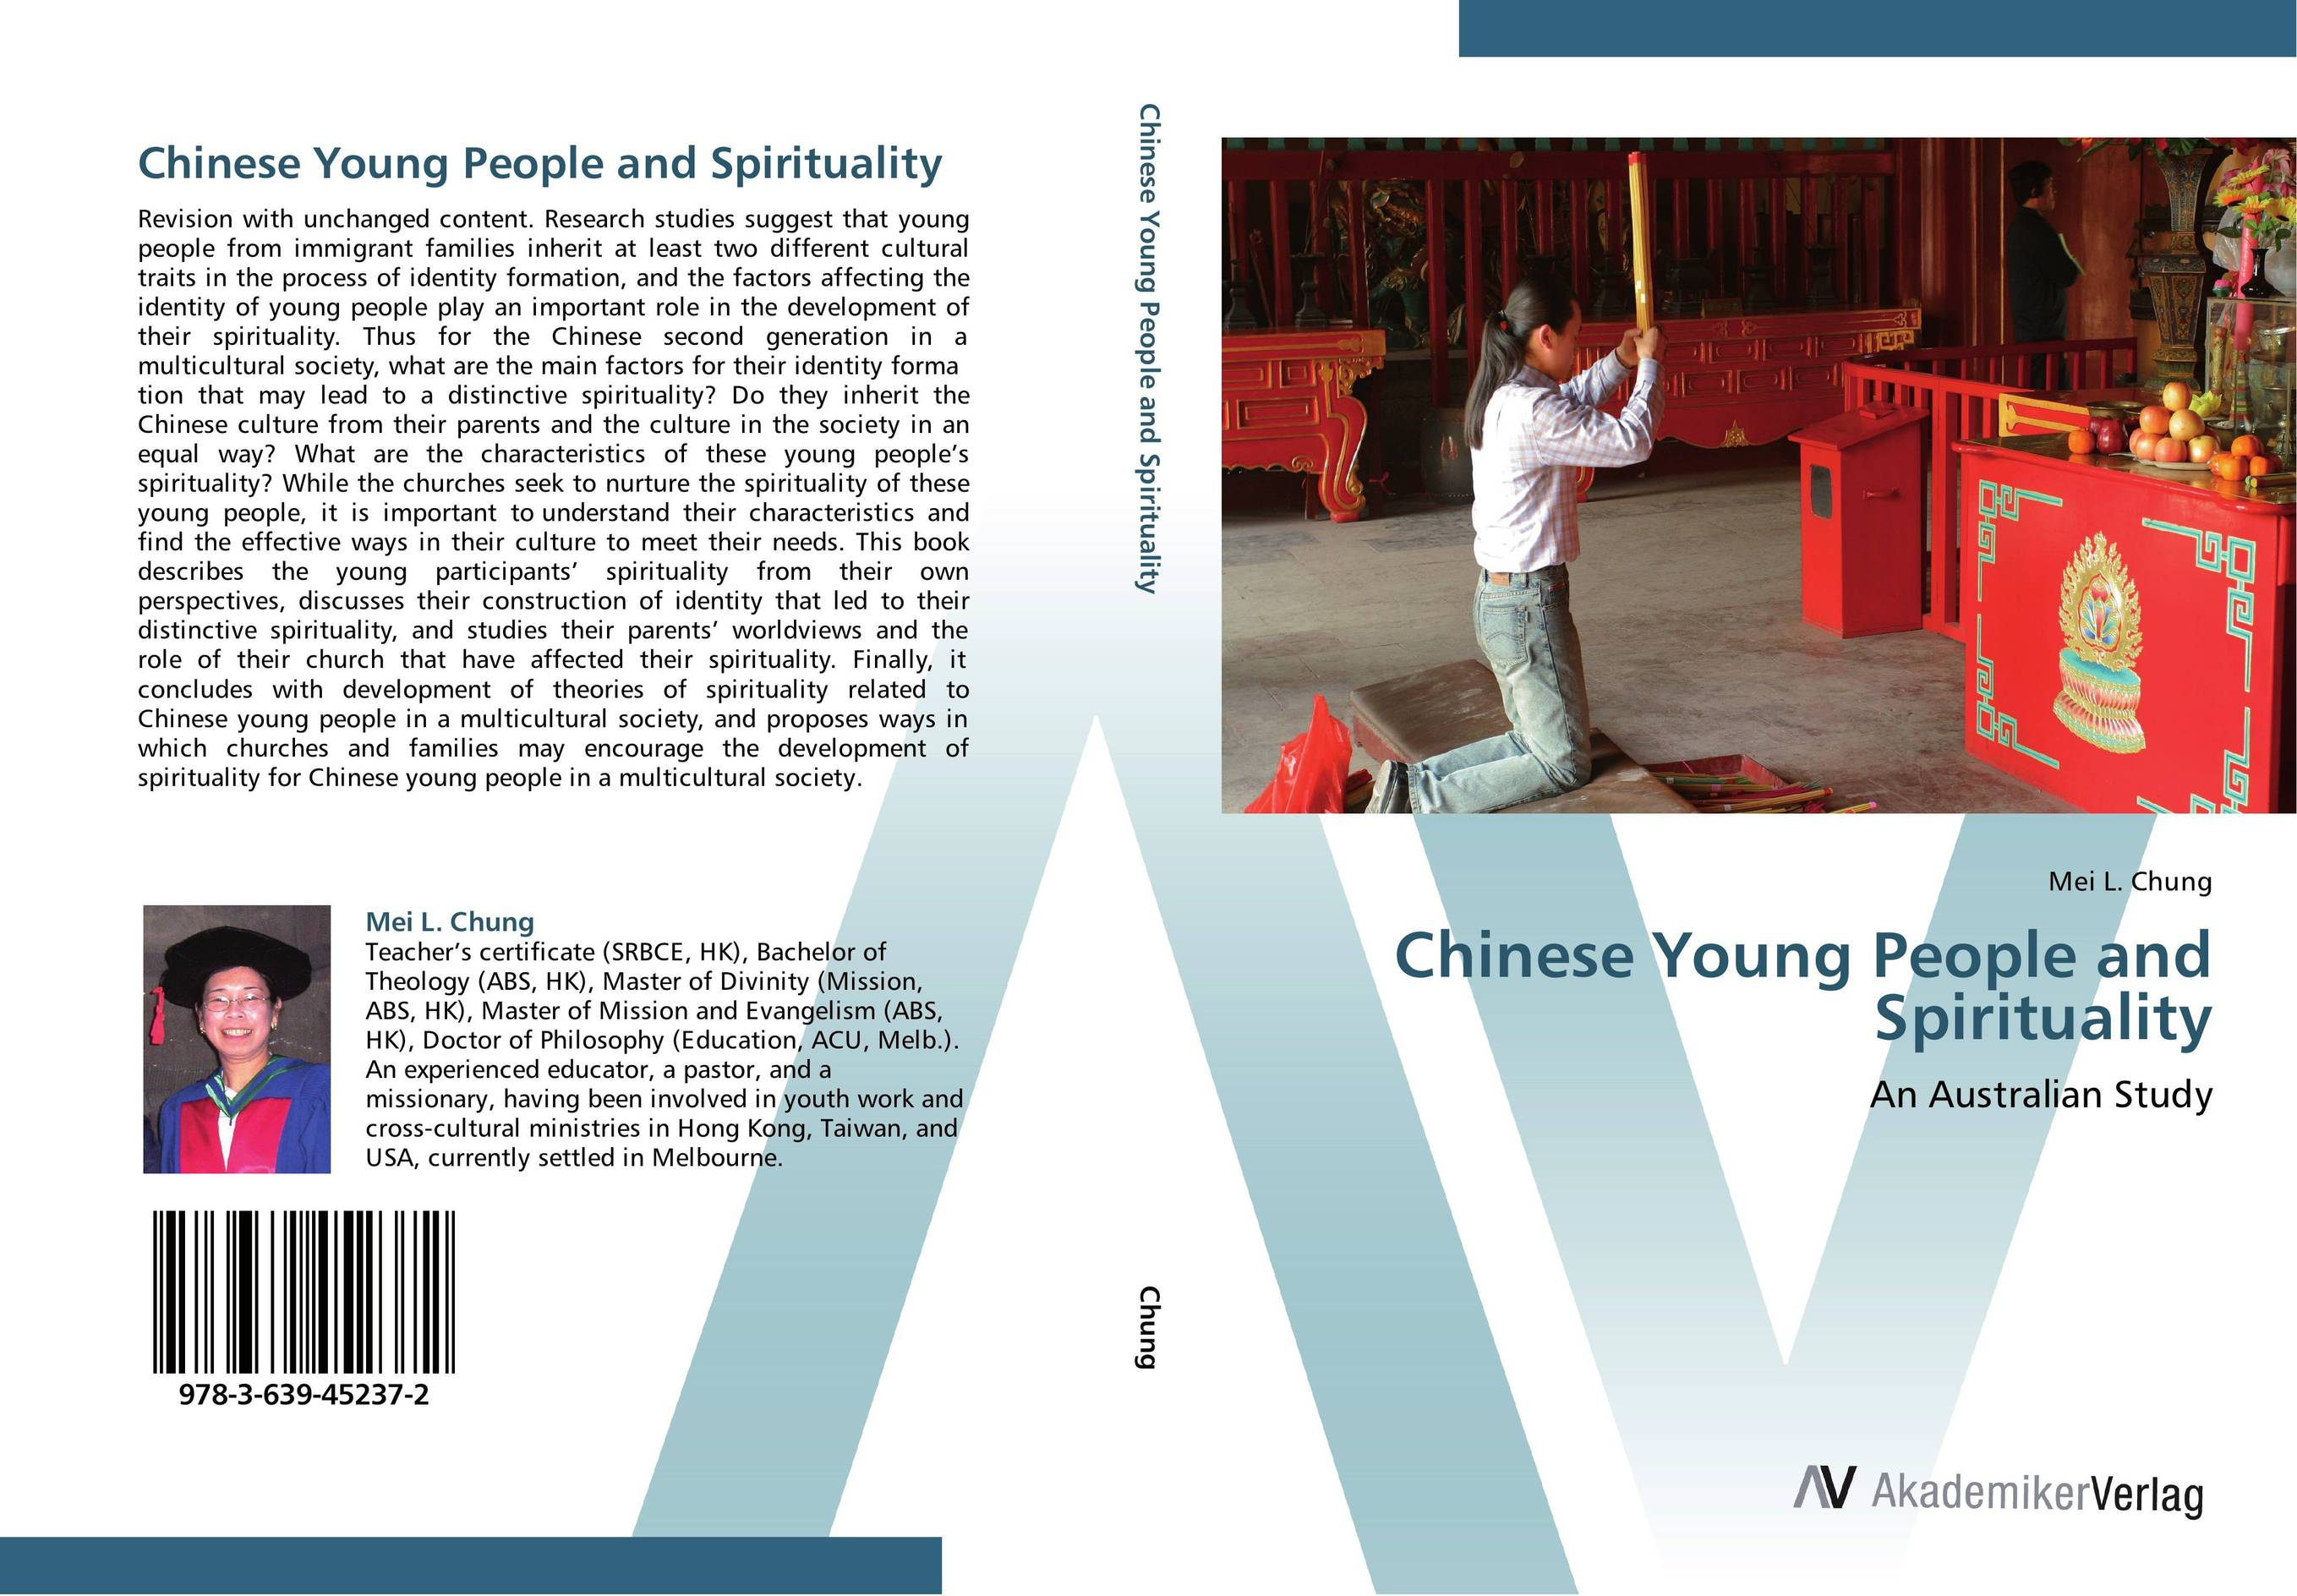 Chinese Young People and Spirituality arcade ndoricimpa inflation output growth and their uncertainties in south africa empirical evidence from an asymmetric multivariate garch m model